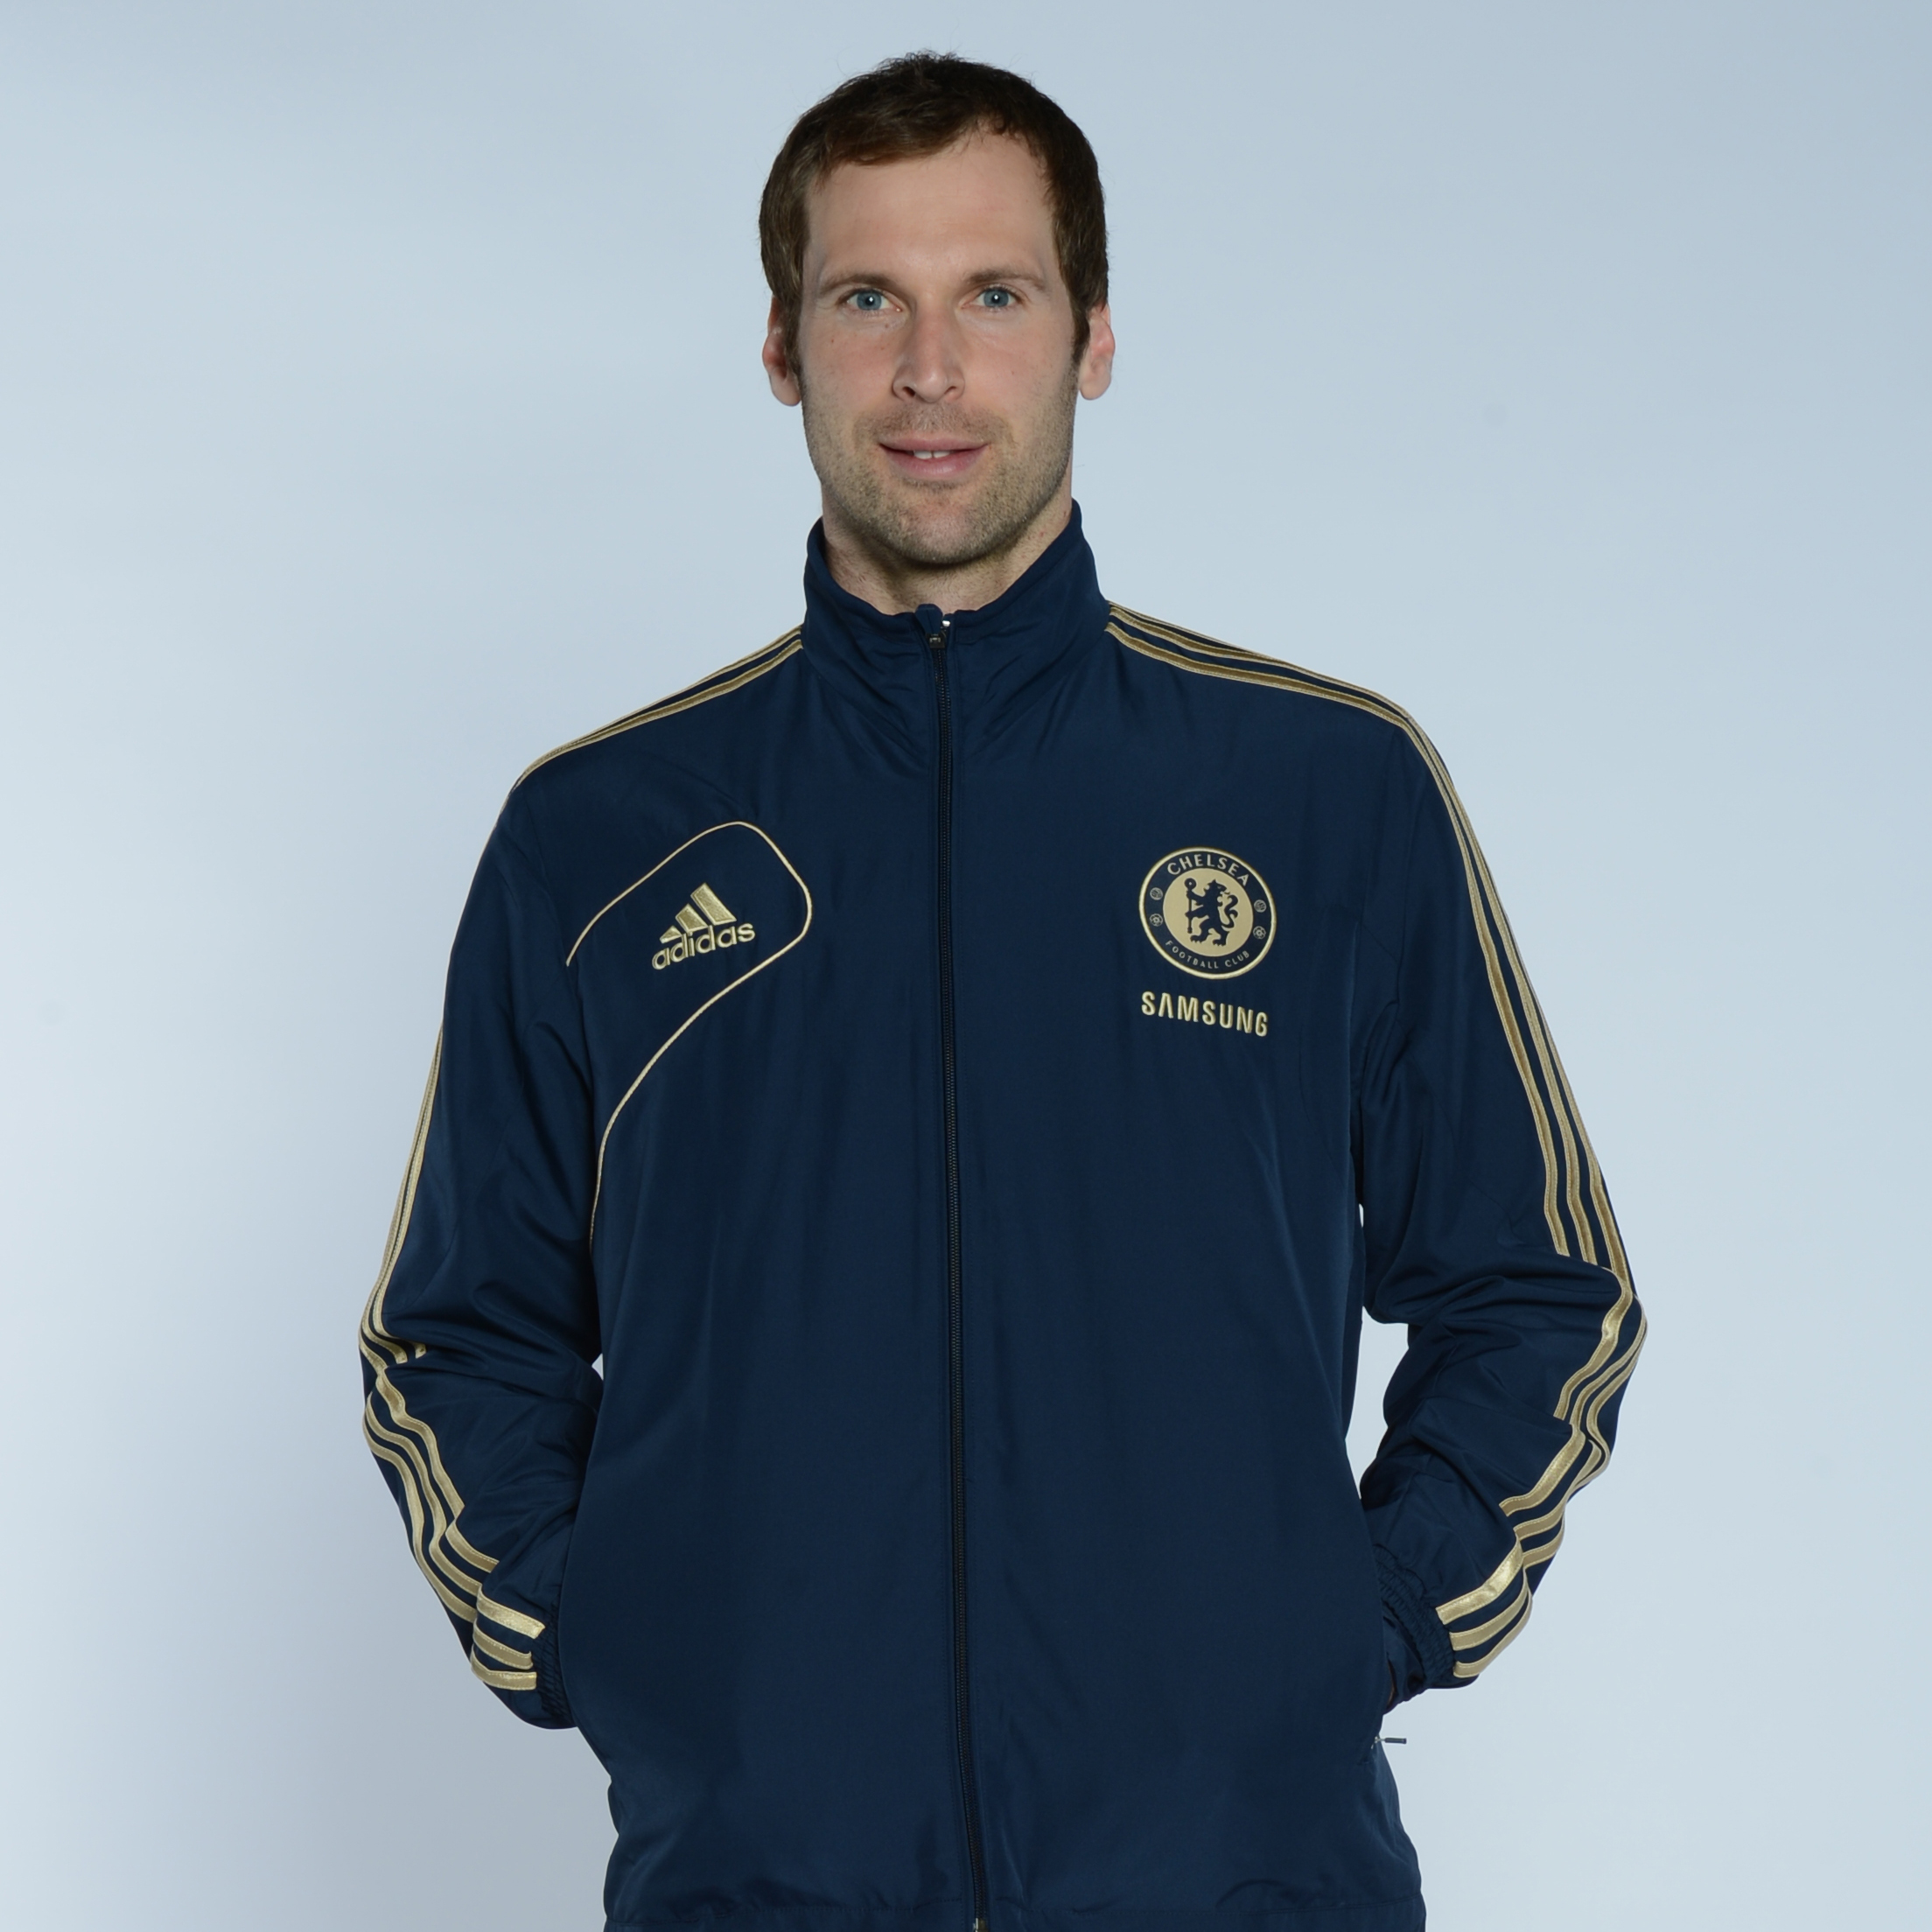 Chelsea Training Presentation Jacket - Collegiate Navy/Light Football Gold